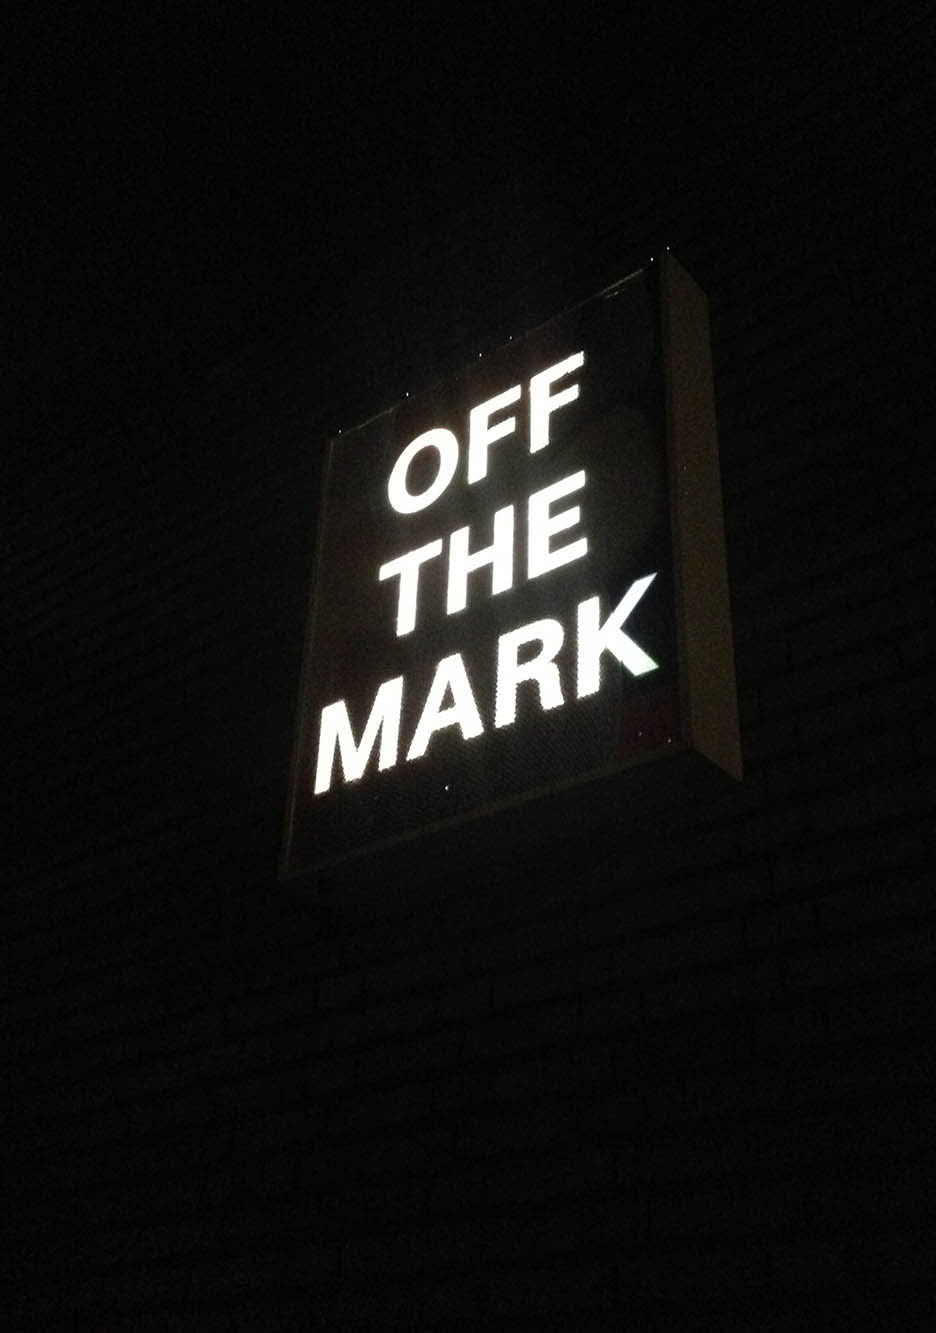 off_the_mark_night